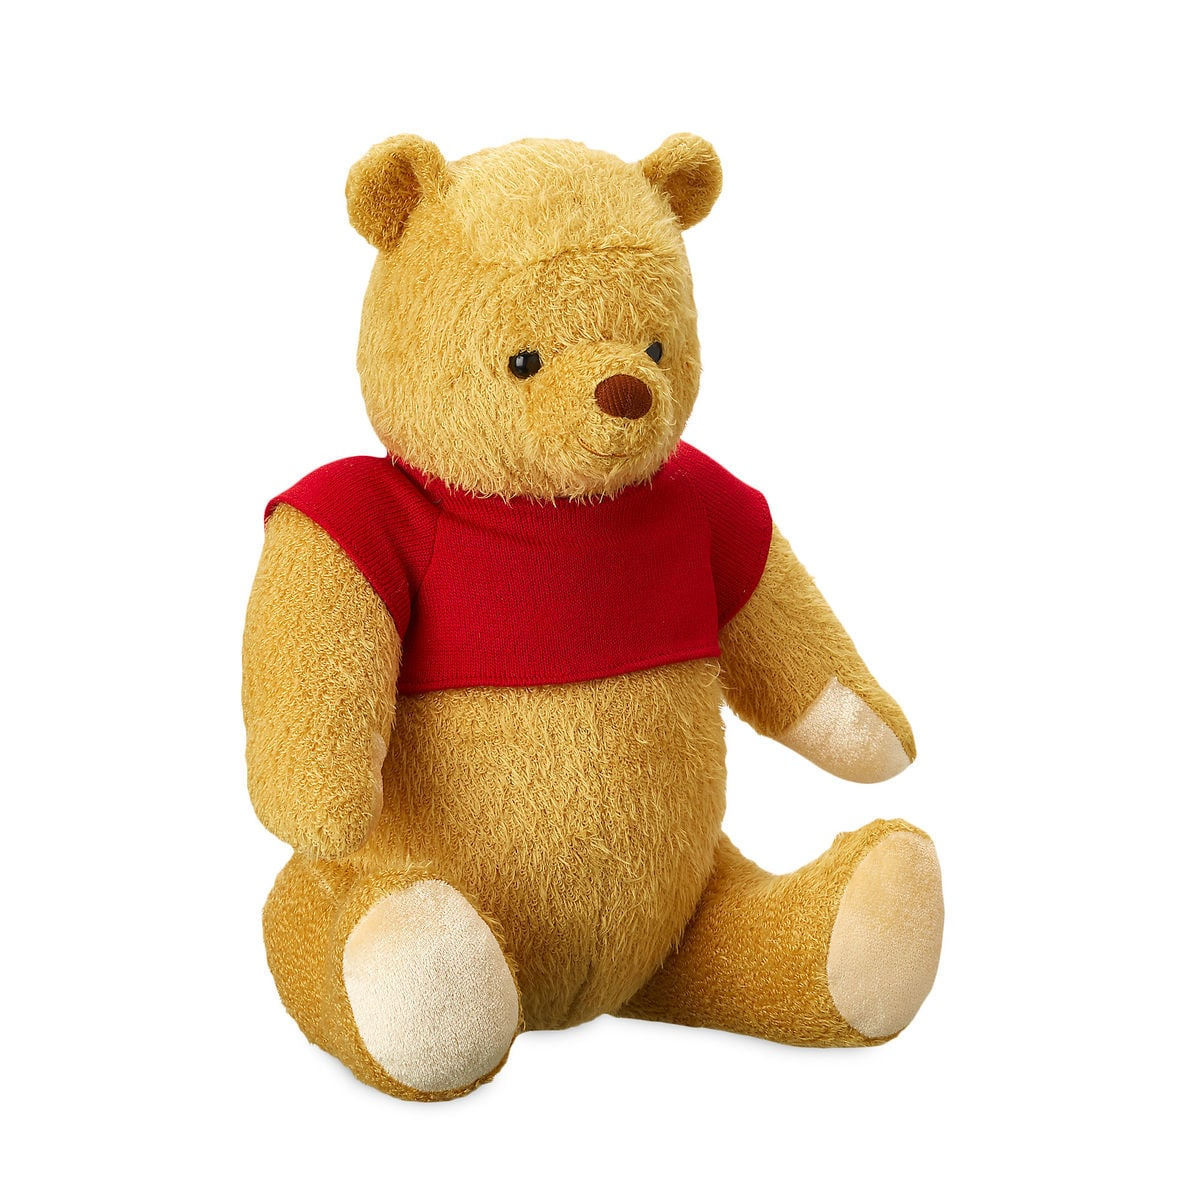 Product Image of Winnie the Pooh Plush - Christopher Robin - Medium   1 d8fddcb7867e